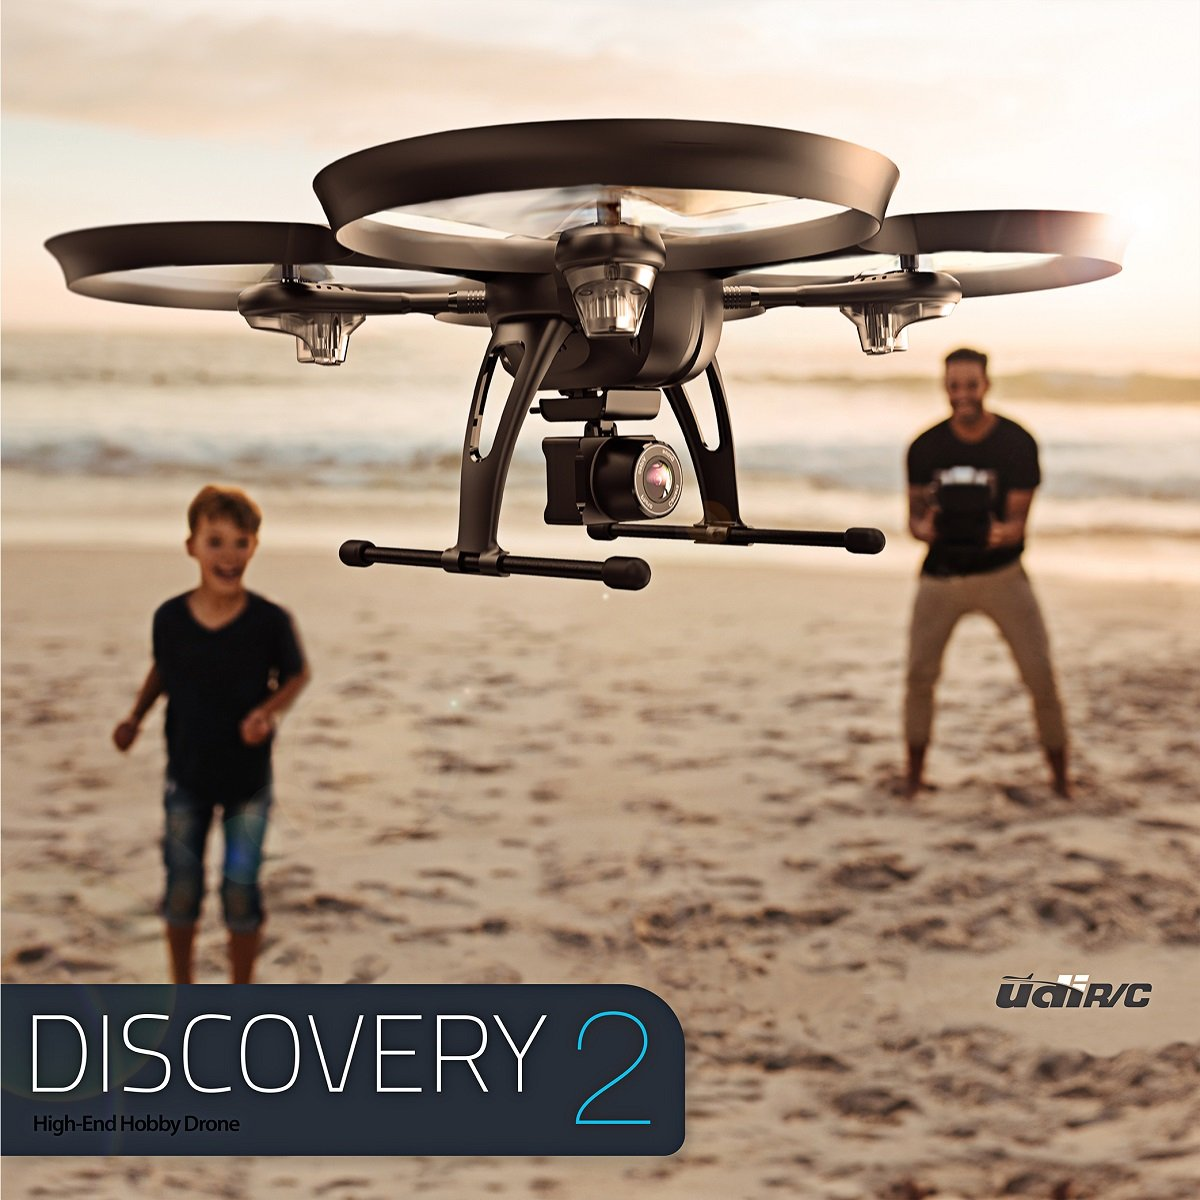 Discovery 2 Drone - 720P Great Range and Flight Time,  Drone with 720P HD Camera DBPOWER Headless Mode Quad Copter, Improved Next Gen with Bestseller Discovery Long Flying, Introduction Offer by UDI RC